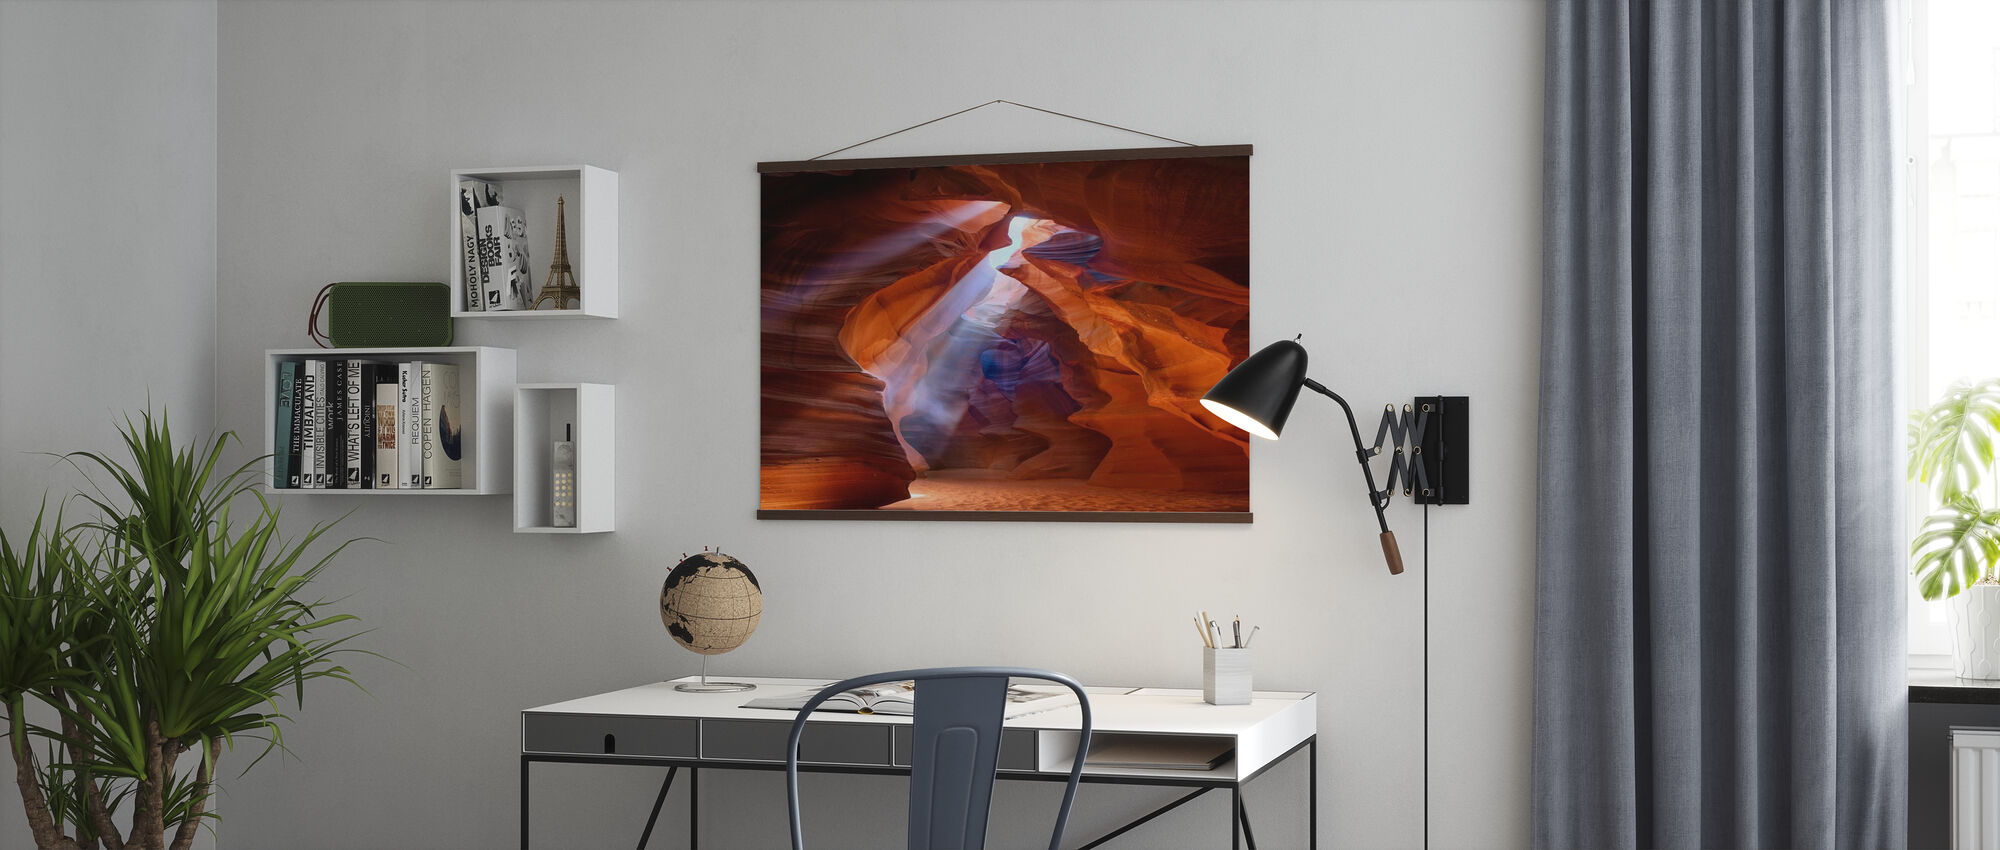 Pure Photodelight 2 - Poster - Office